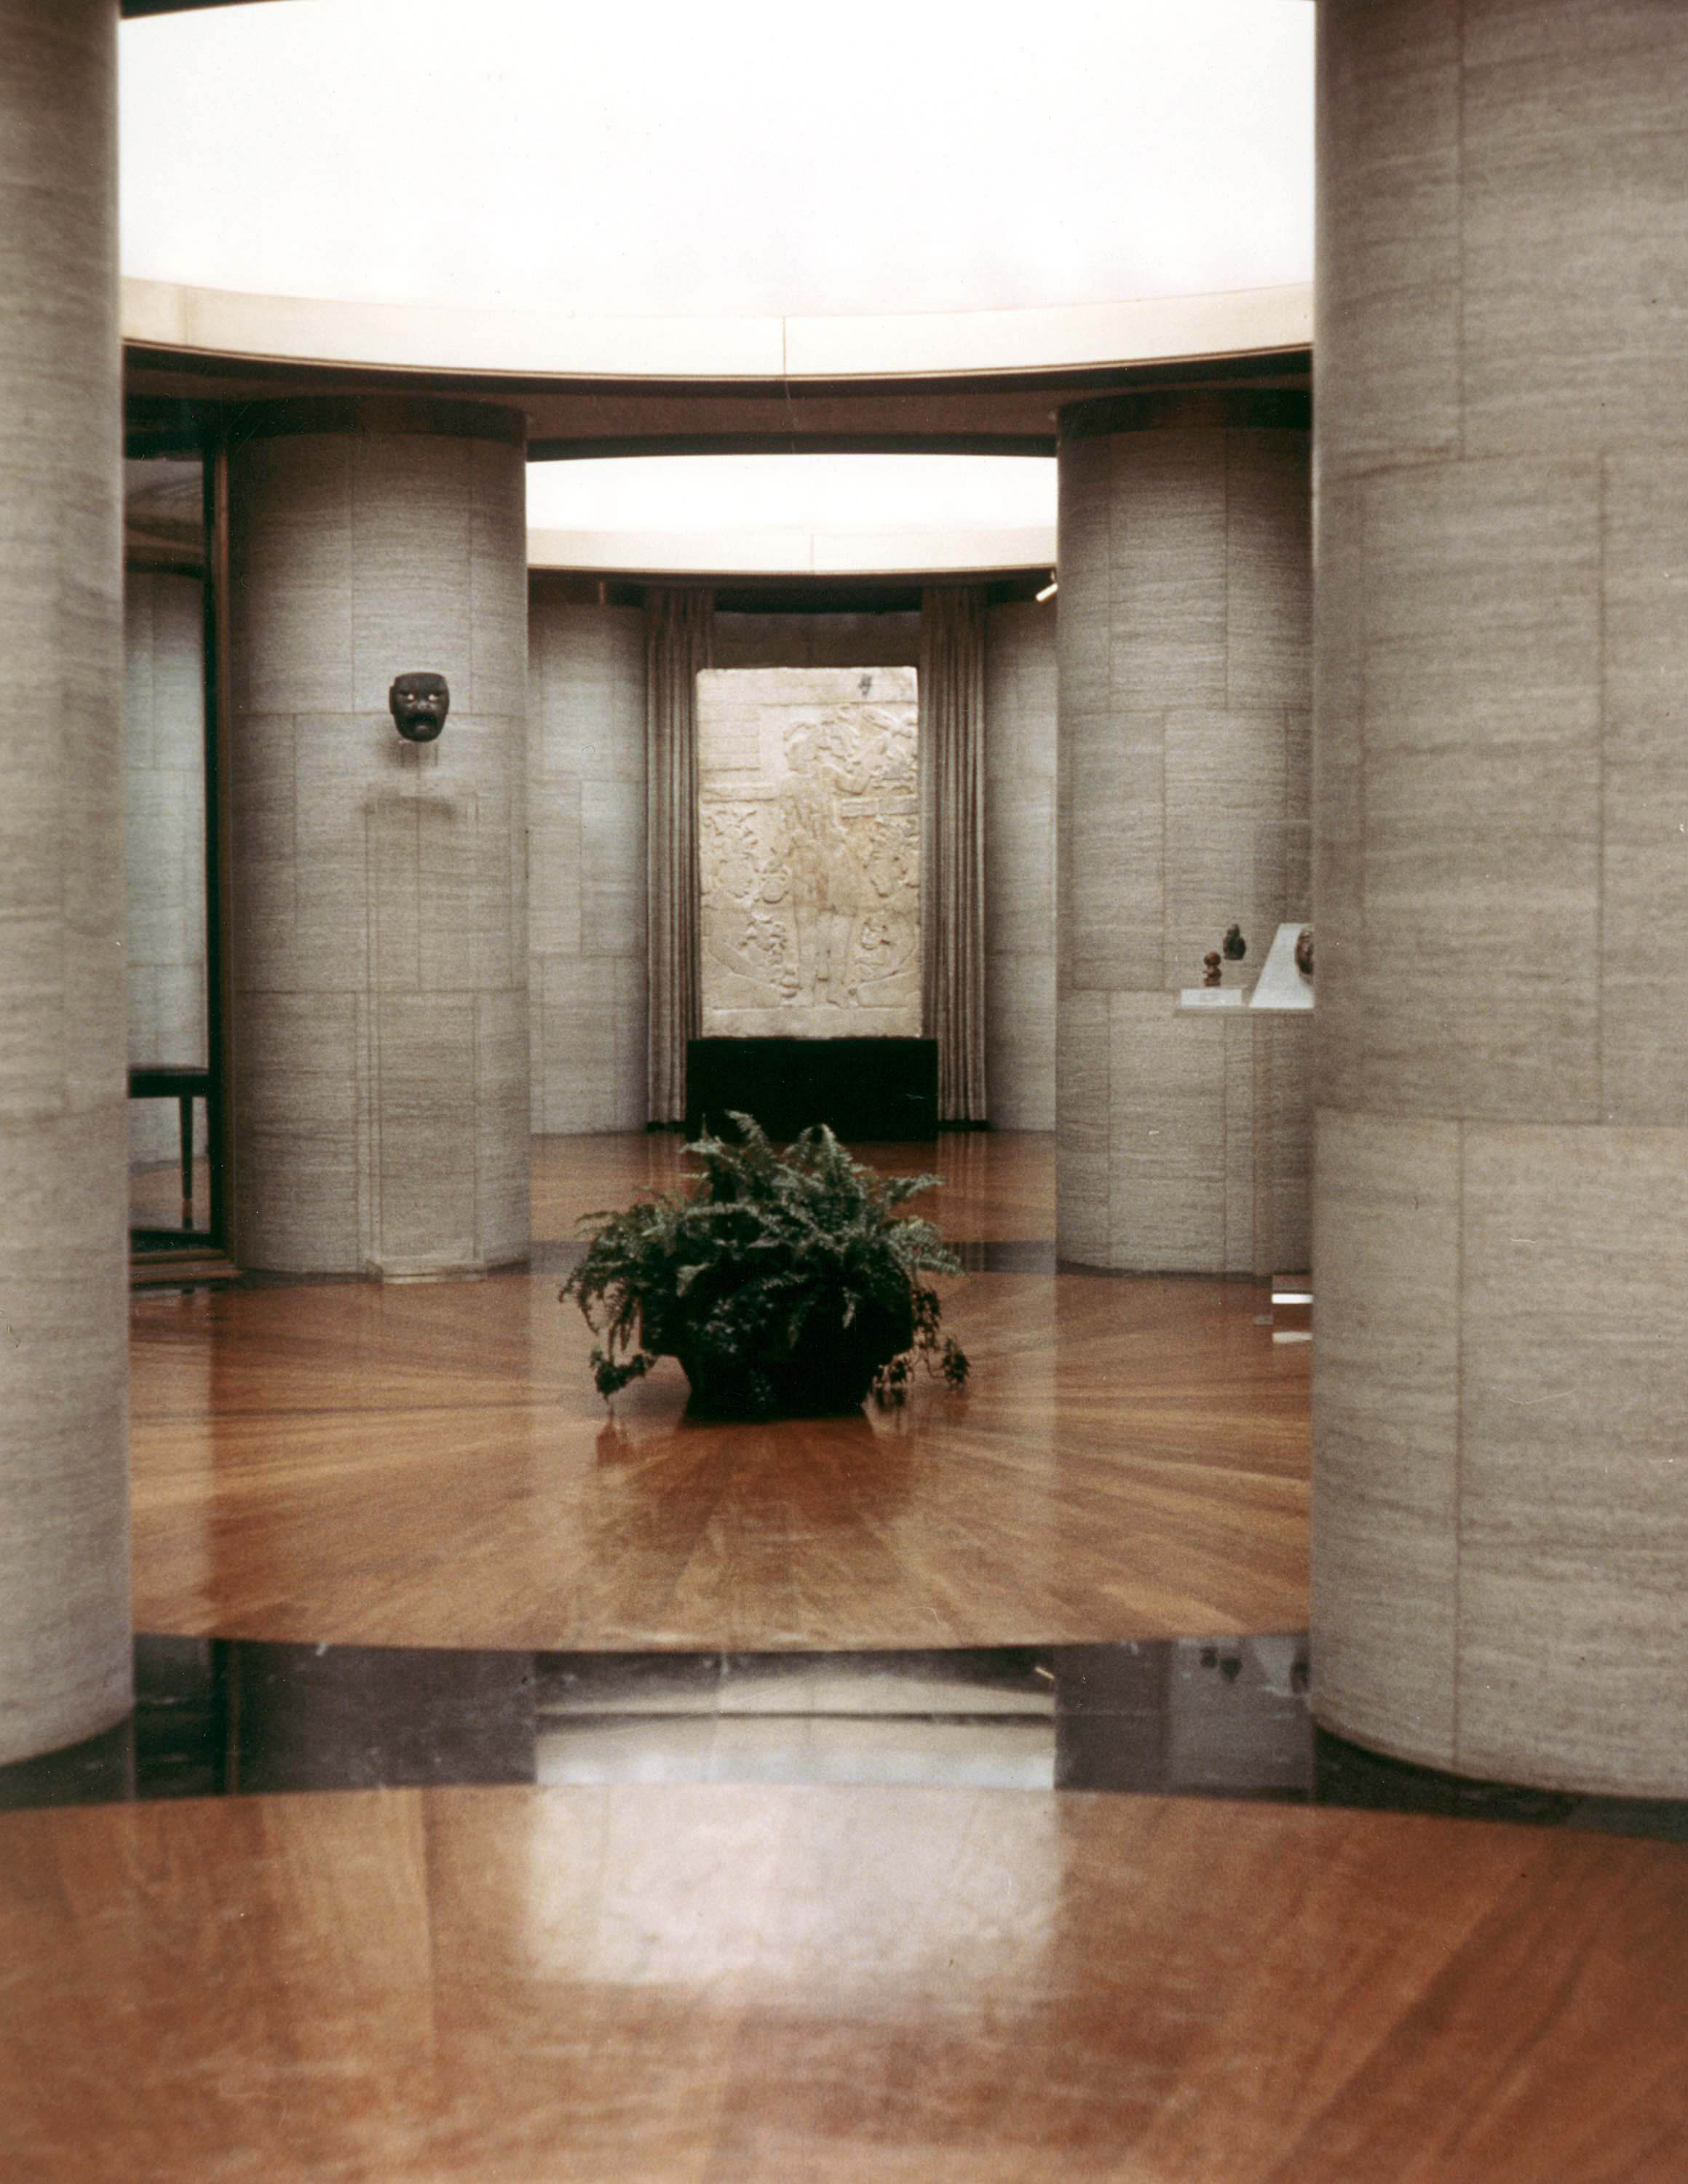 Philip Johnson at Dumbarton Oaks: Figure 38